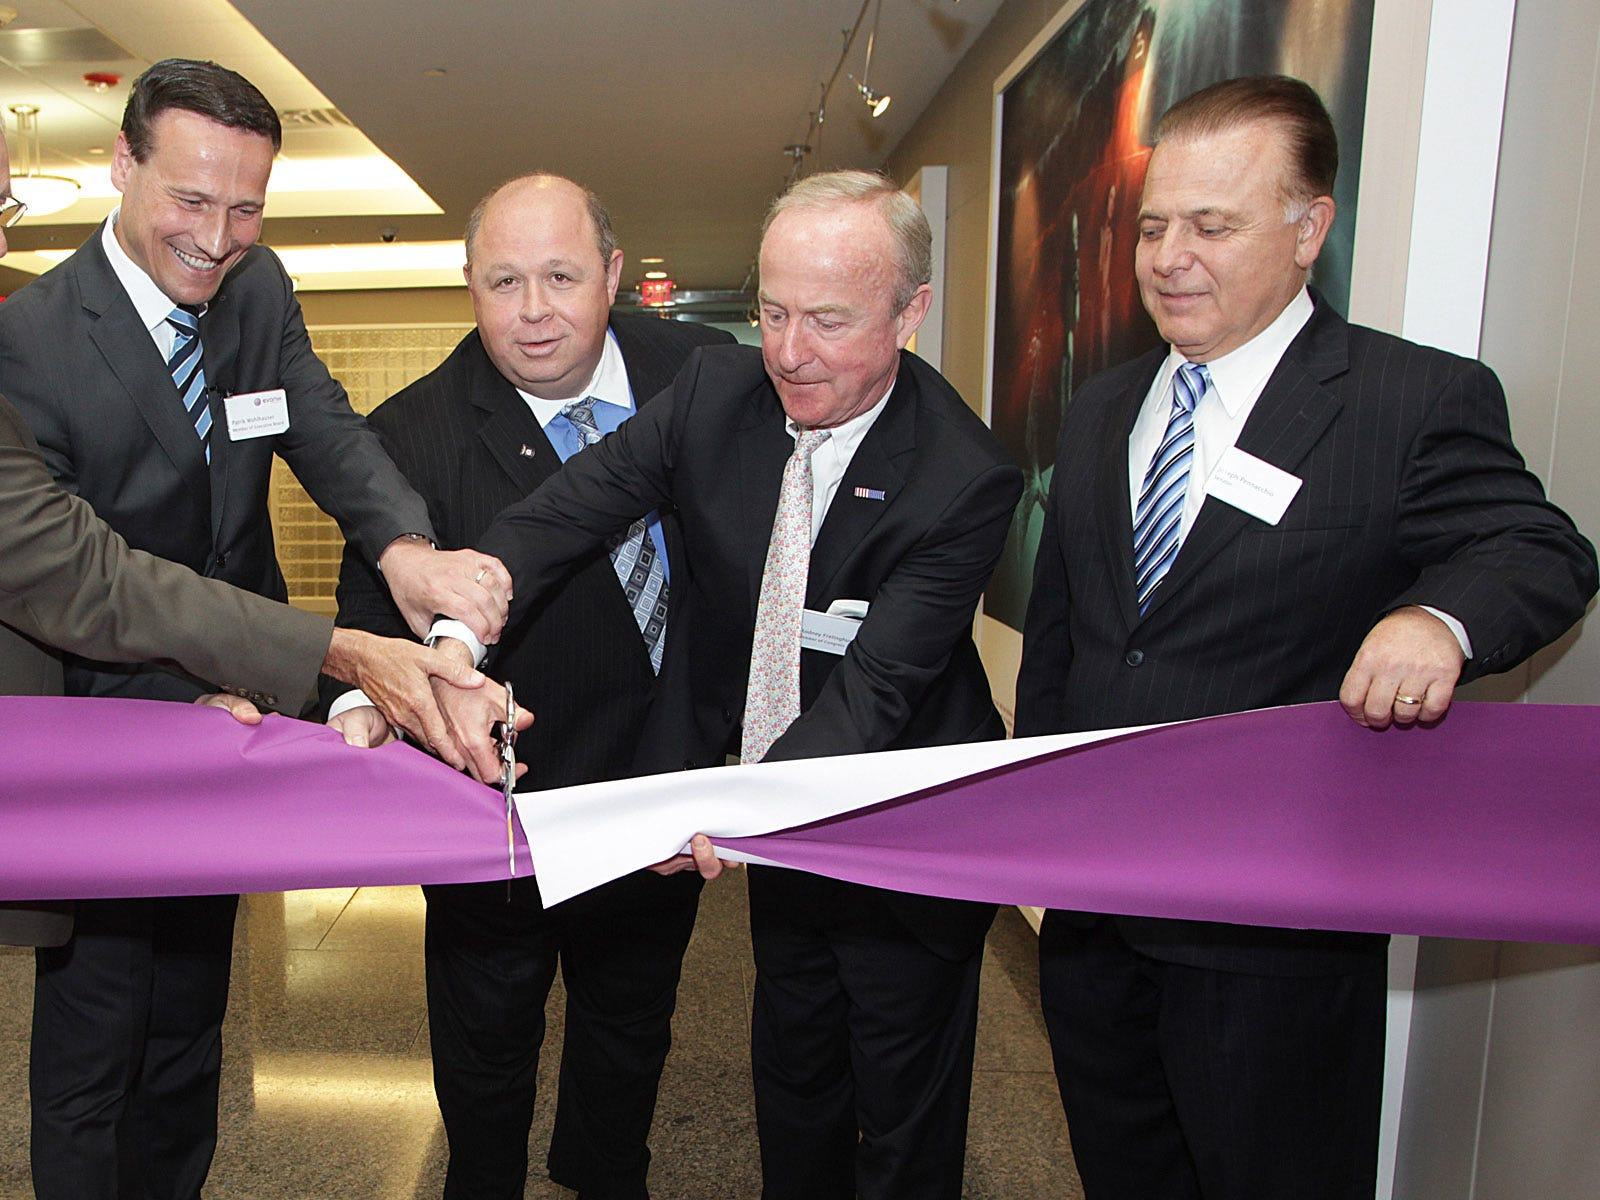 Parsippany -- 05/14/2012 -- Evonik Degussa Corporation dedicates their new administration center -- Participating in the ceremonial ribbon cutting: Tom Bates, Evonik Degussa Corporation President, Evonik Industries AG Board Member Patrik Wohlhauser, Parsippany Mayor James Barberio, Congressman Rodney Frelinghuysen and NJ State Senator Joseph Pennacchio.